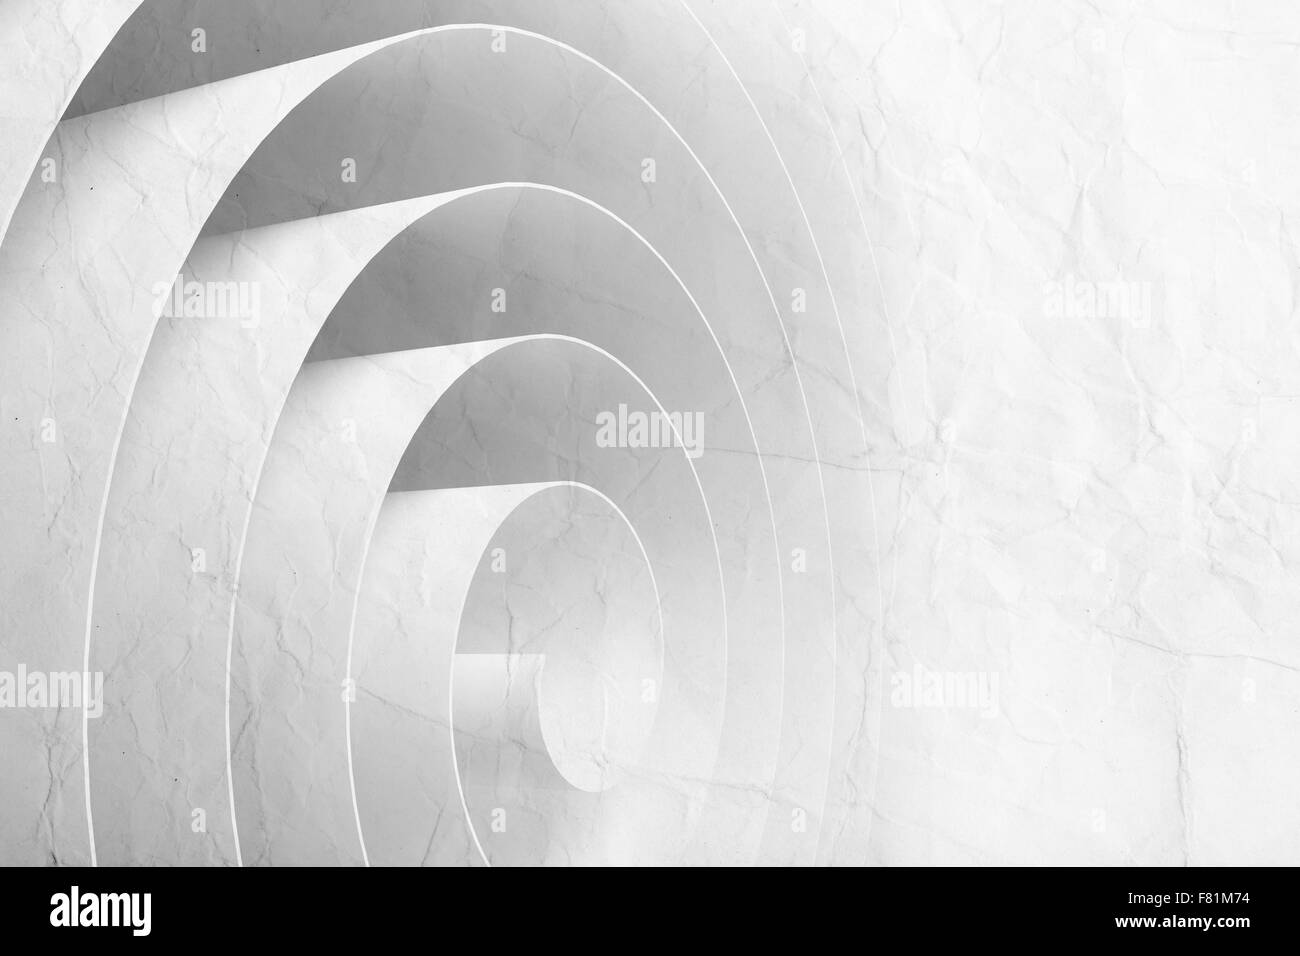 3d spiral made of paper tape with material texture, abstract digital illustration, background pattern - Stock Image